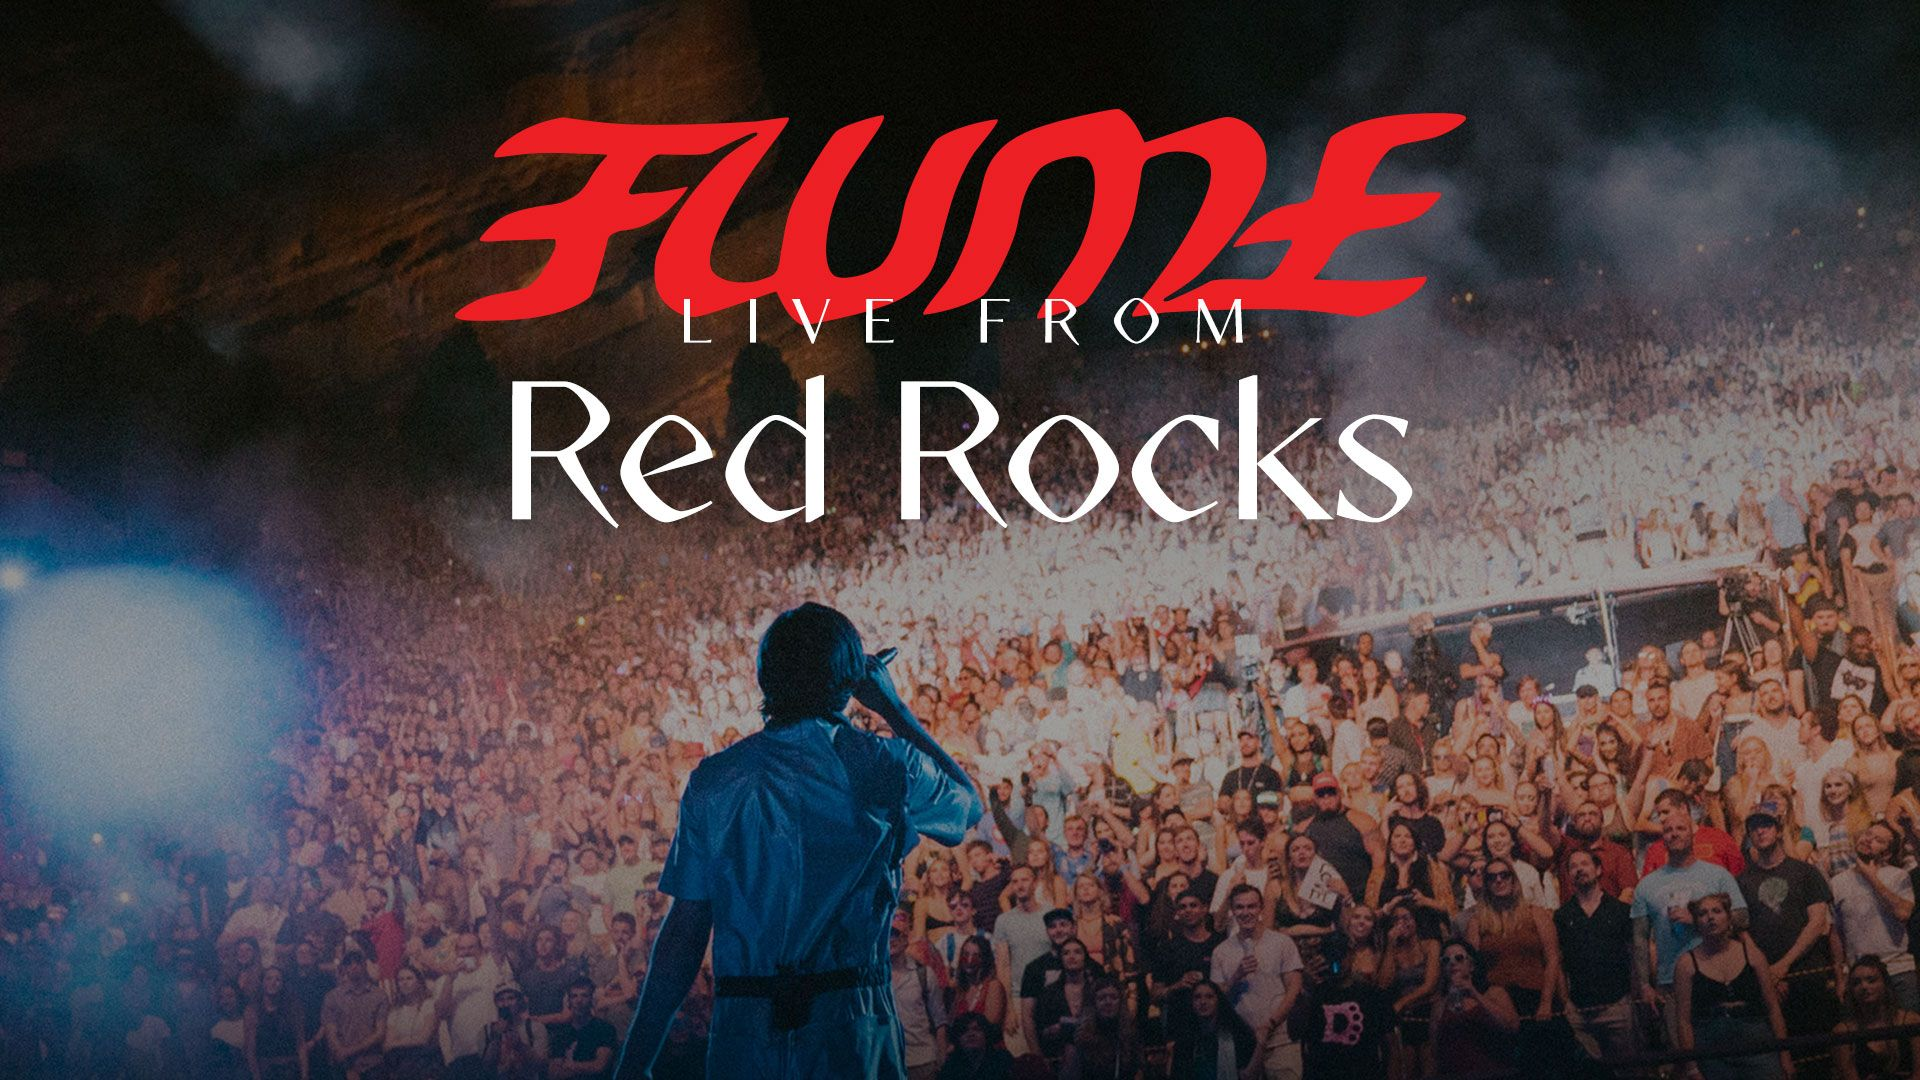 FLUME-RedRocks2019-1920x1080-Thumbnail-Photo-v1